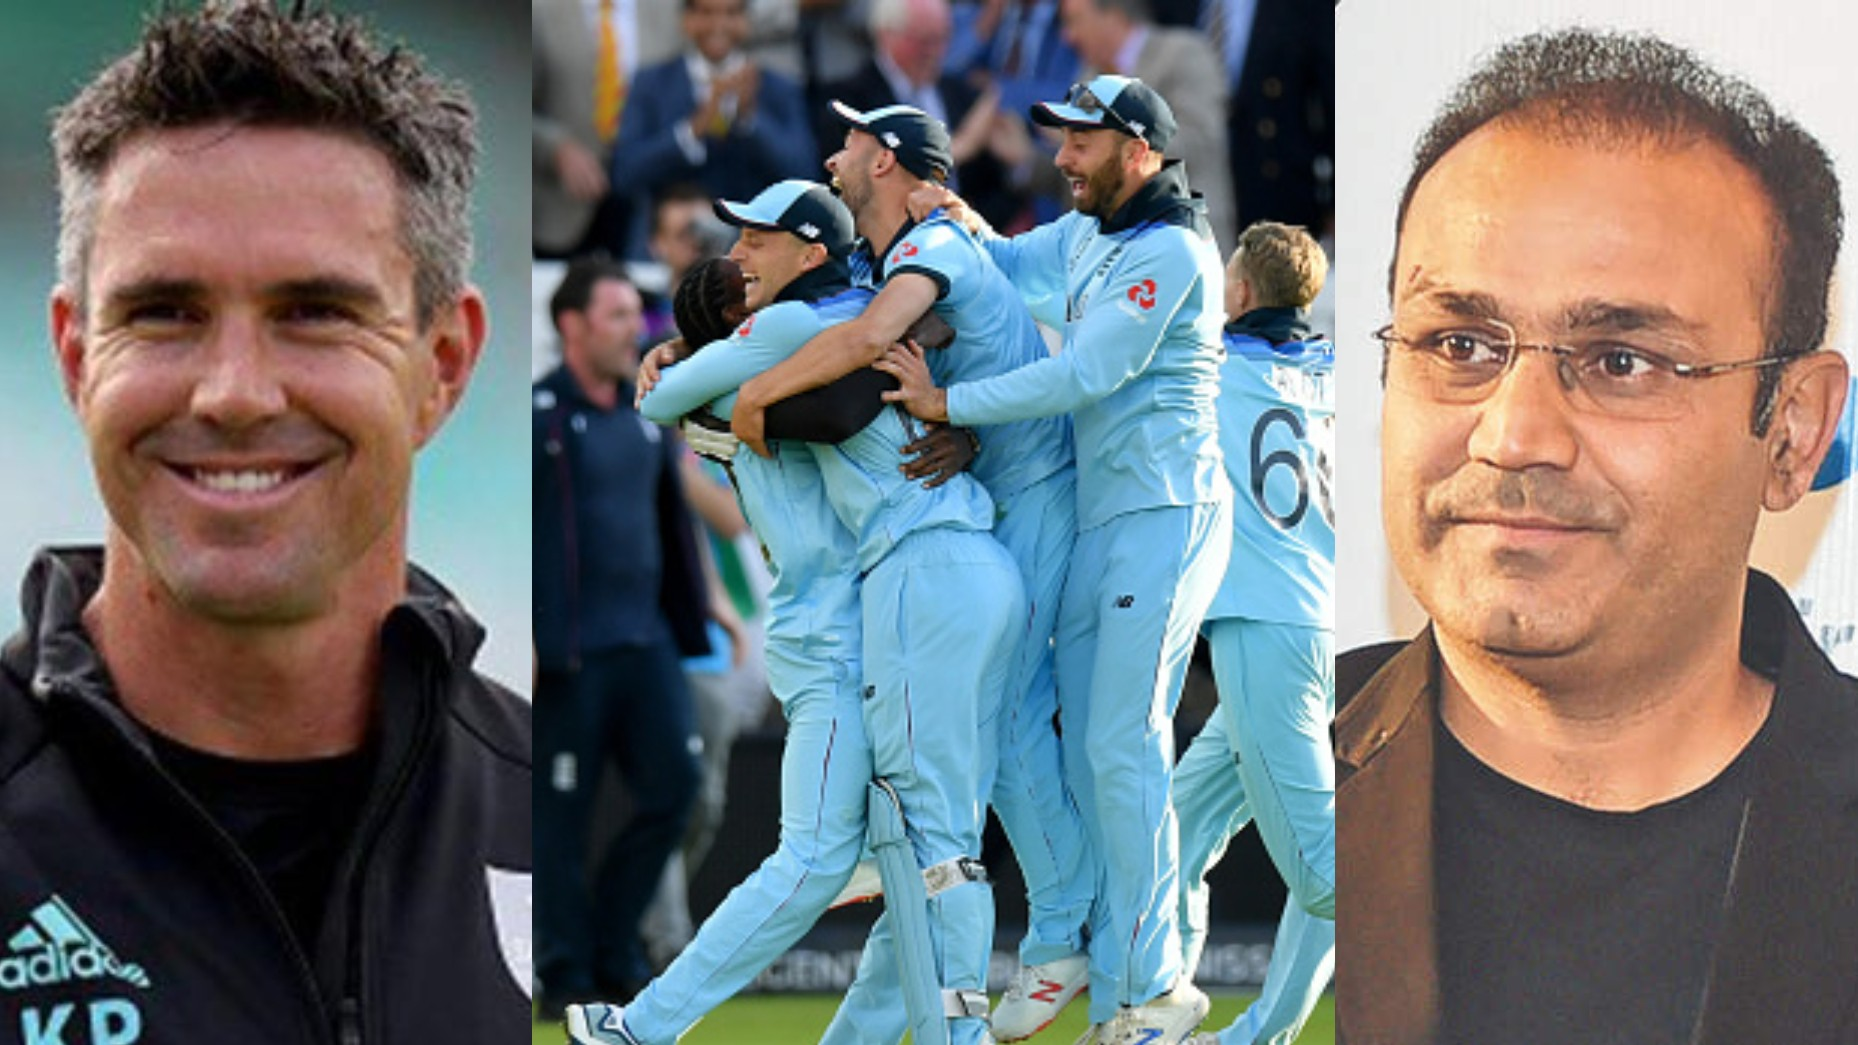 CWC 2019: FINAL – Cricket Fraternity celebrates as England becomes World Champions by beating New Zealand in a heart-stopping thriller